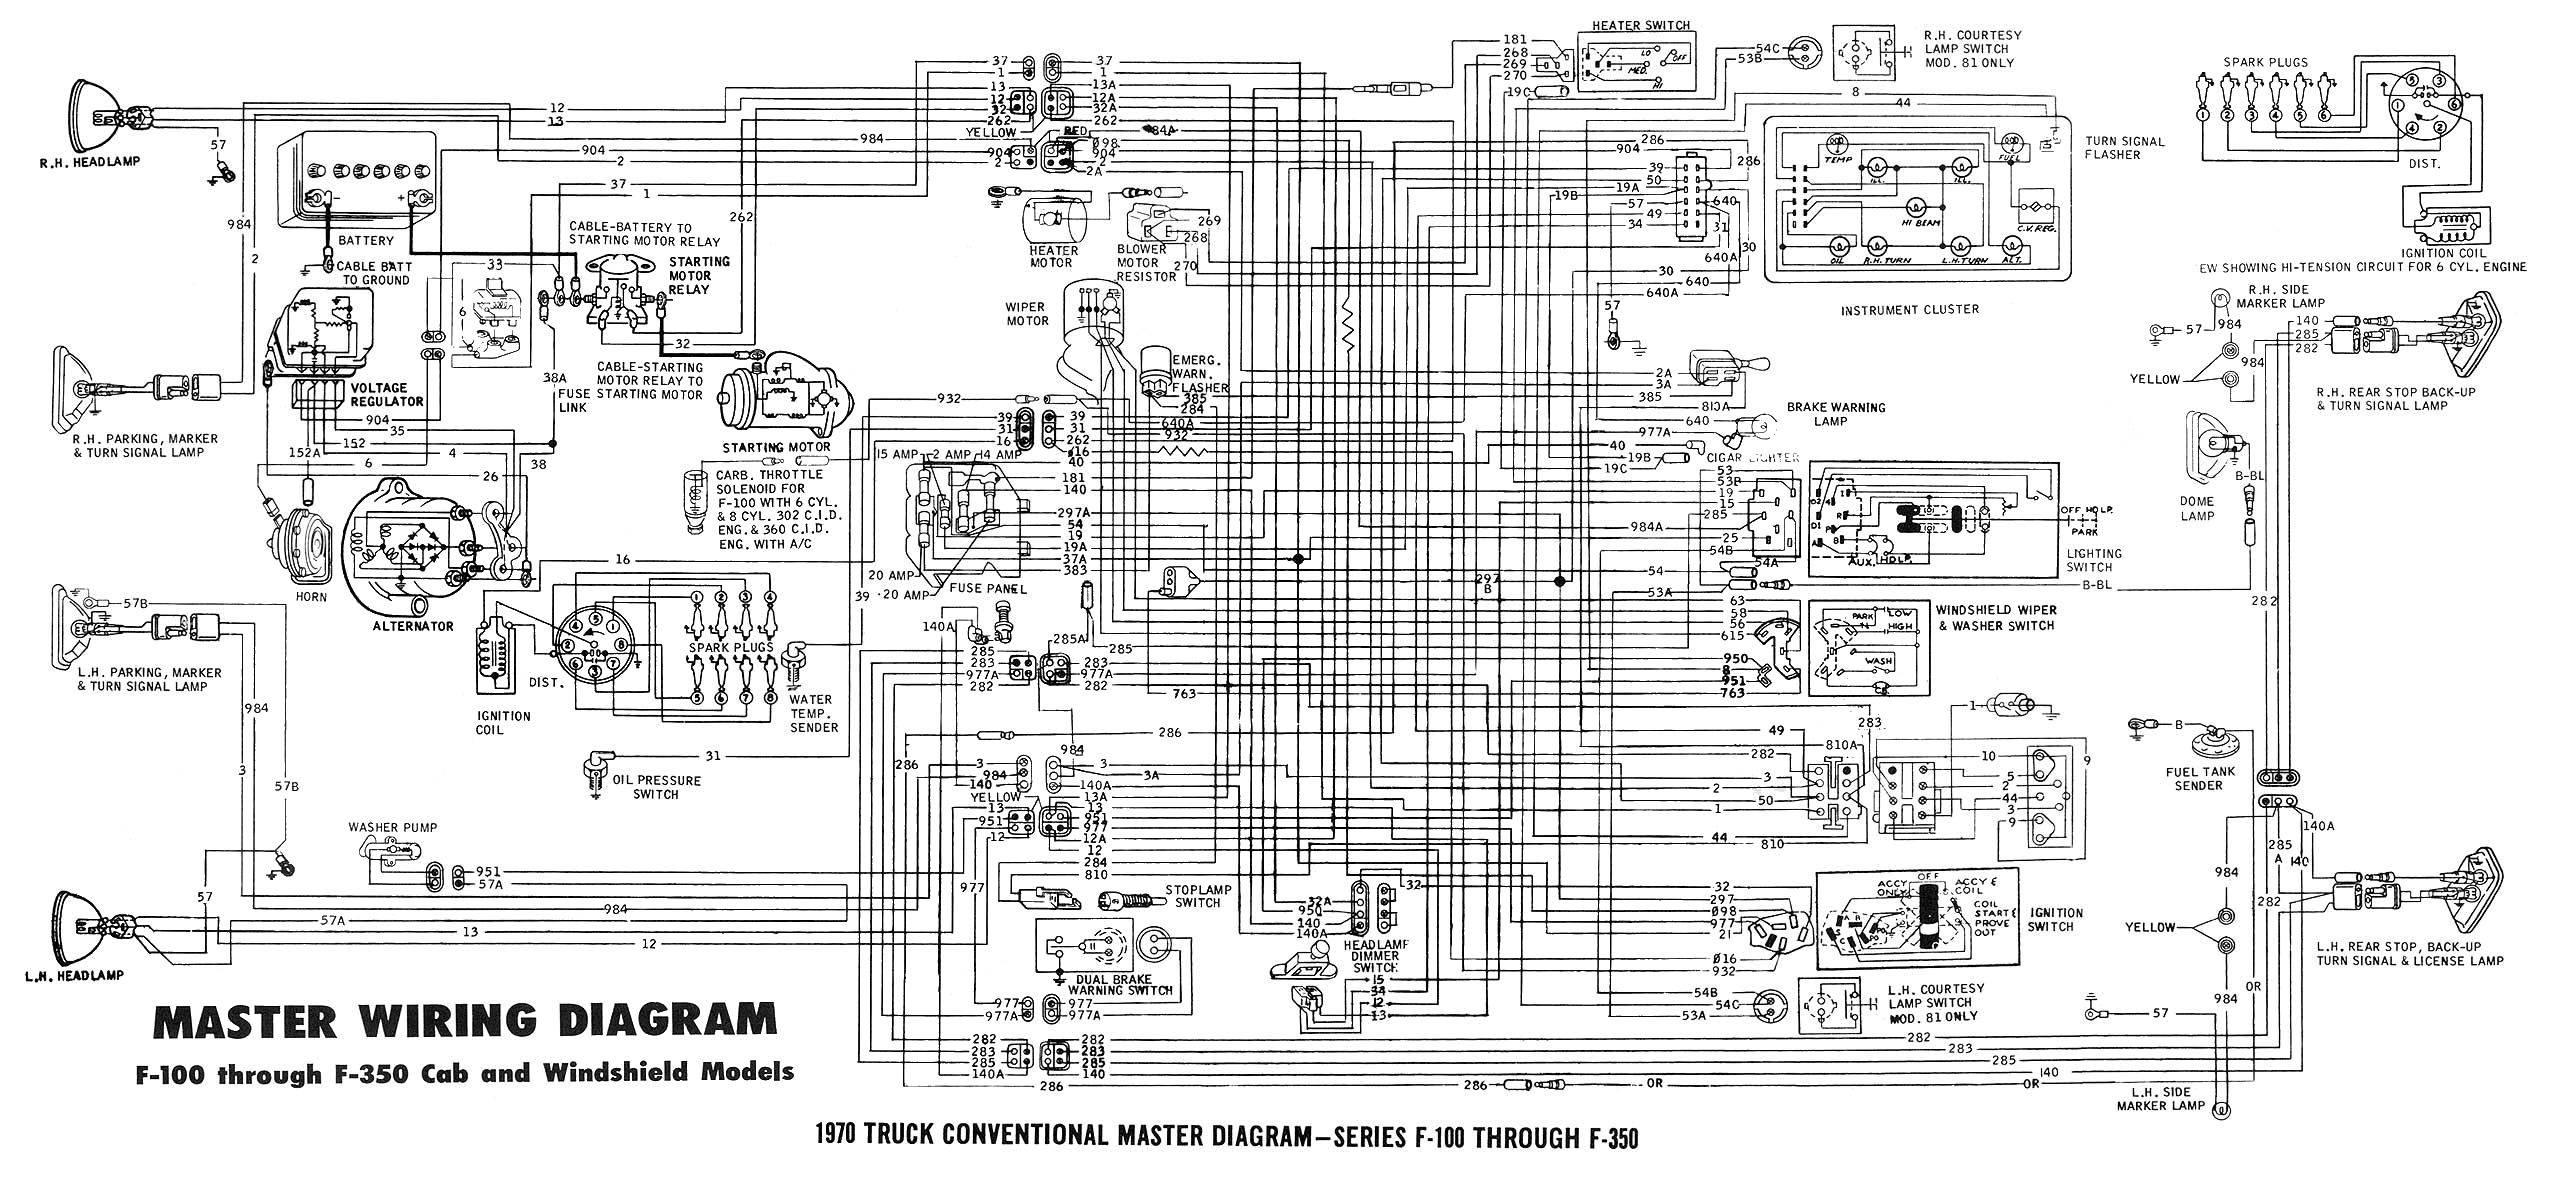 Dodge Engine Compartment Wiring Harness Ford Factory Wiring Diagrams